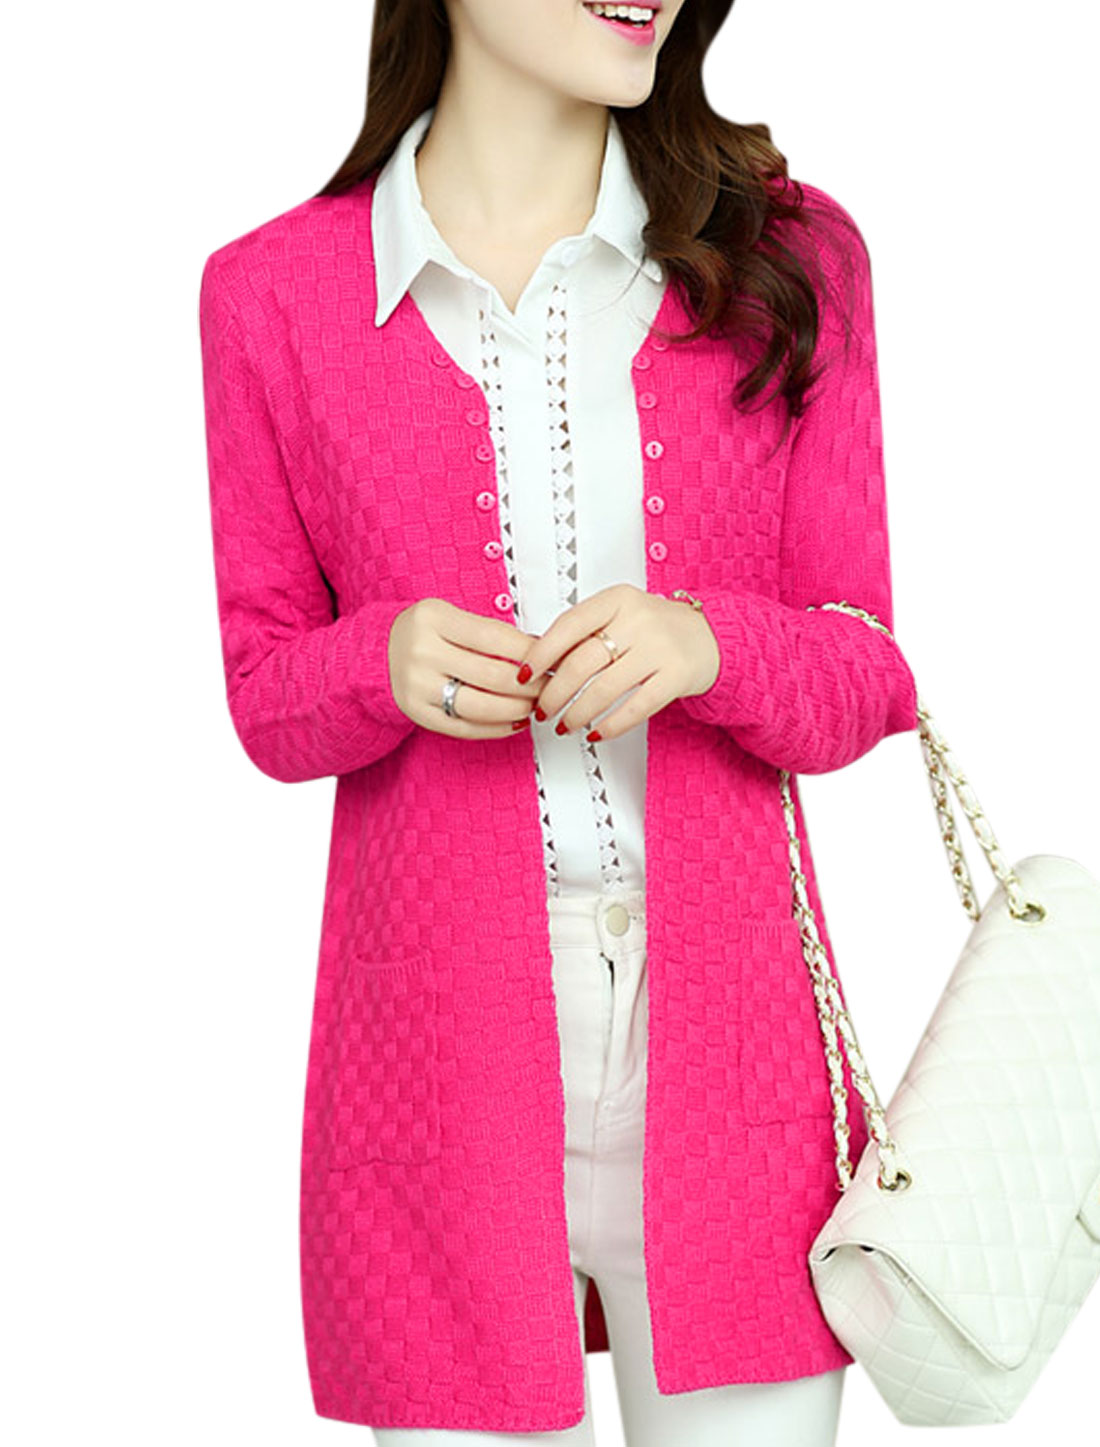 Women Fashion Style Open Front Vertical Pockets Leisure Cardigan Fuchsia XS